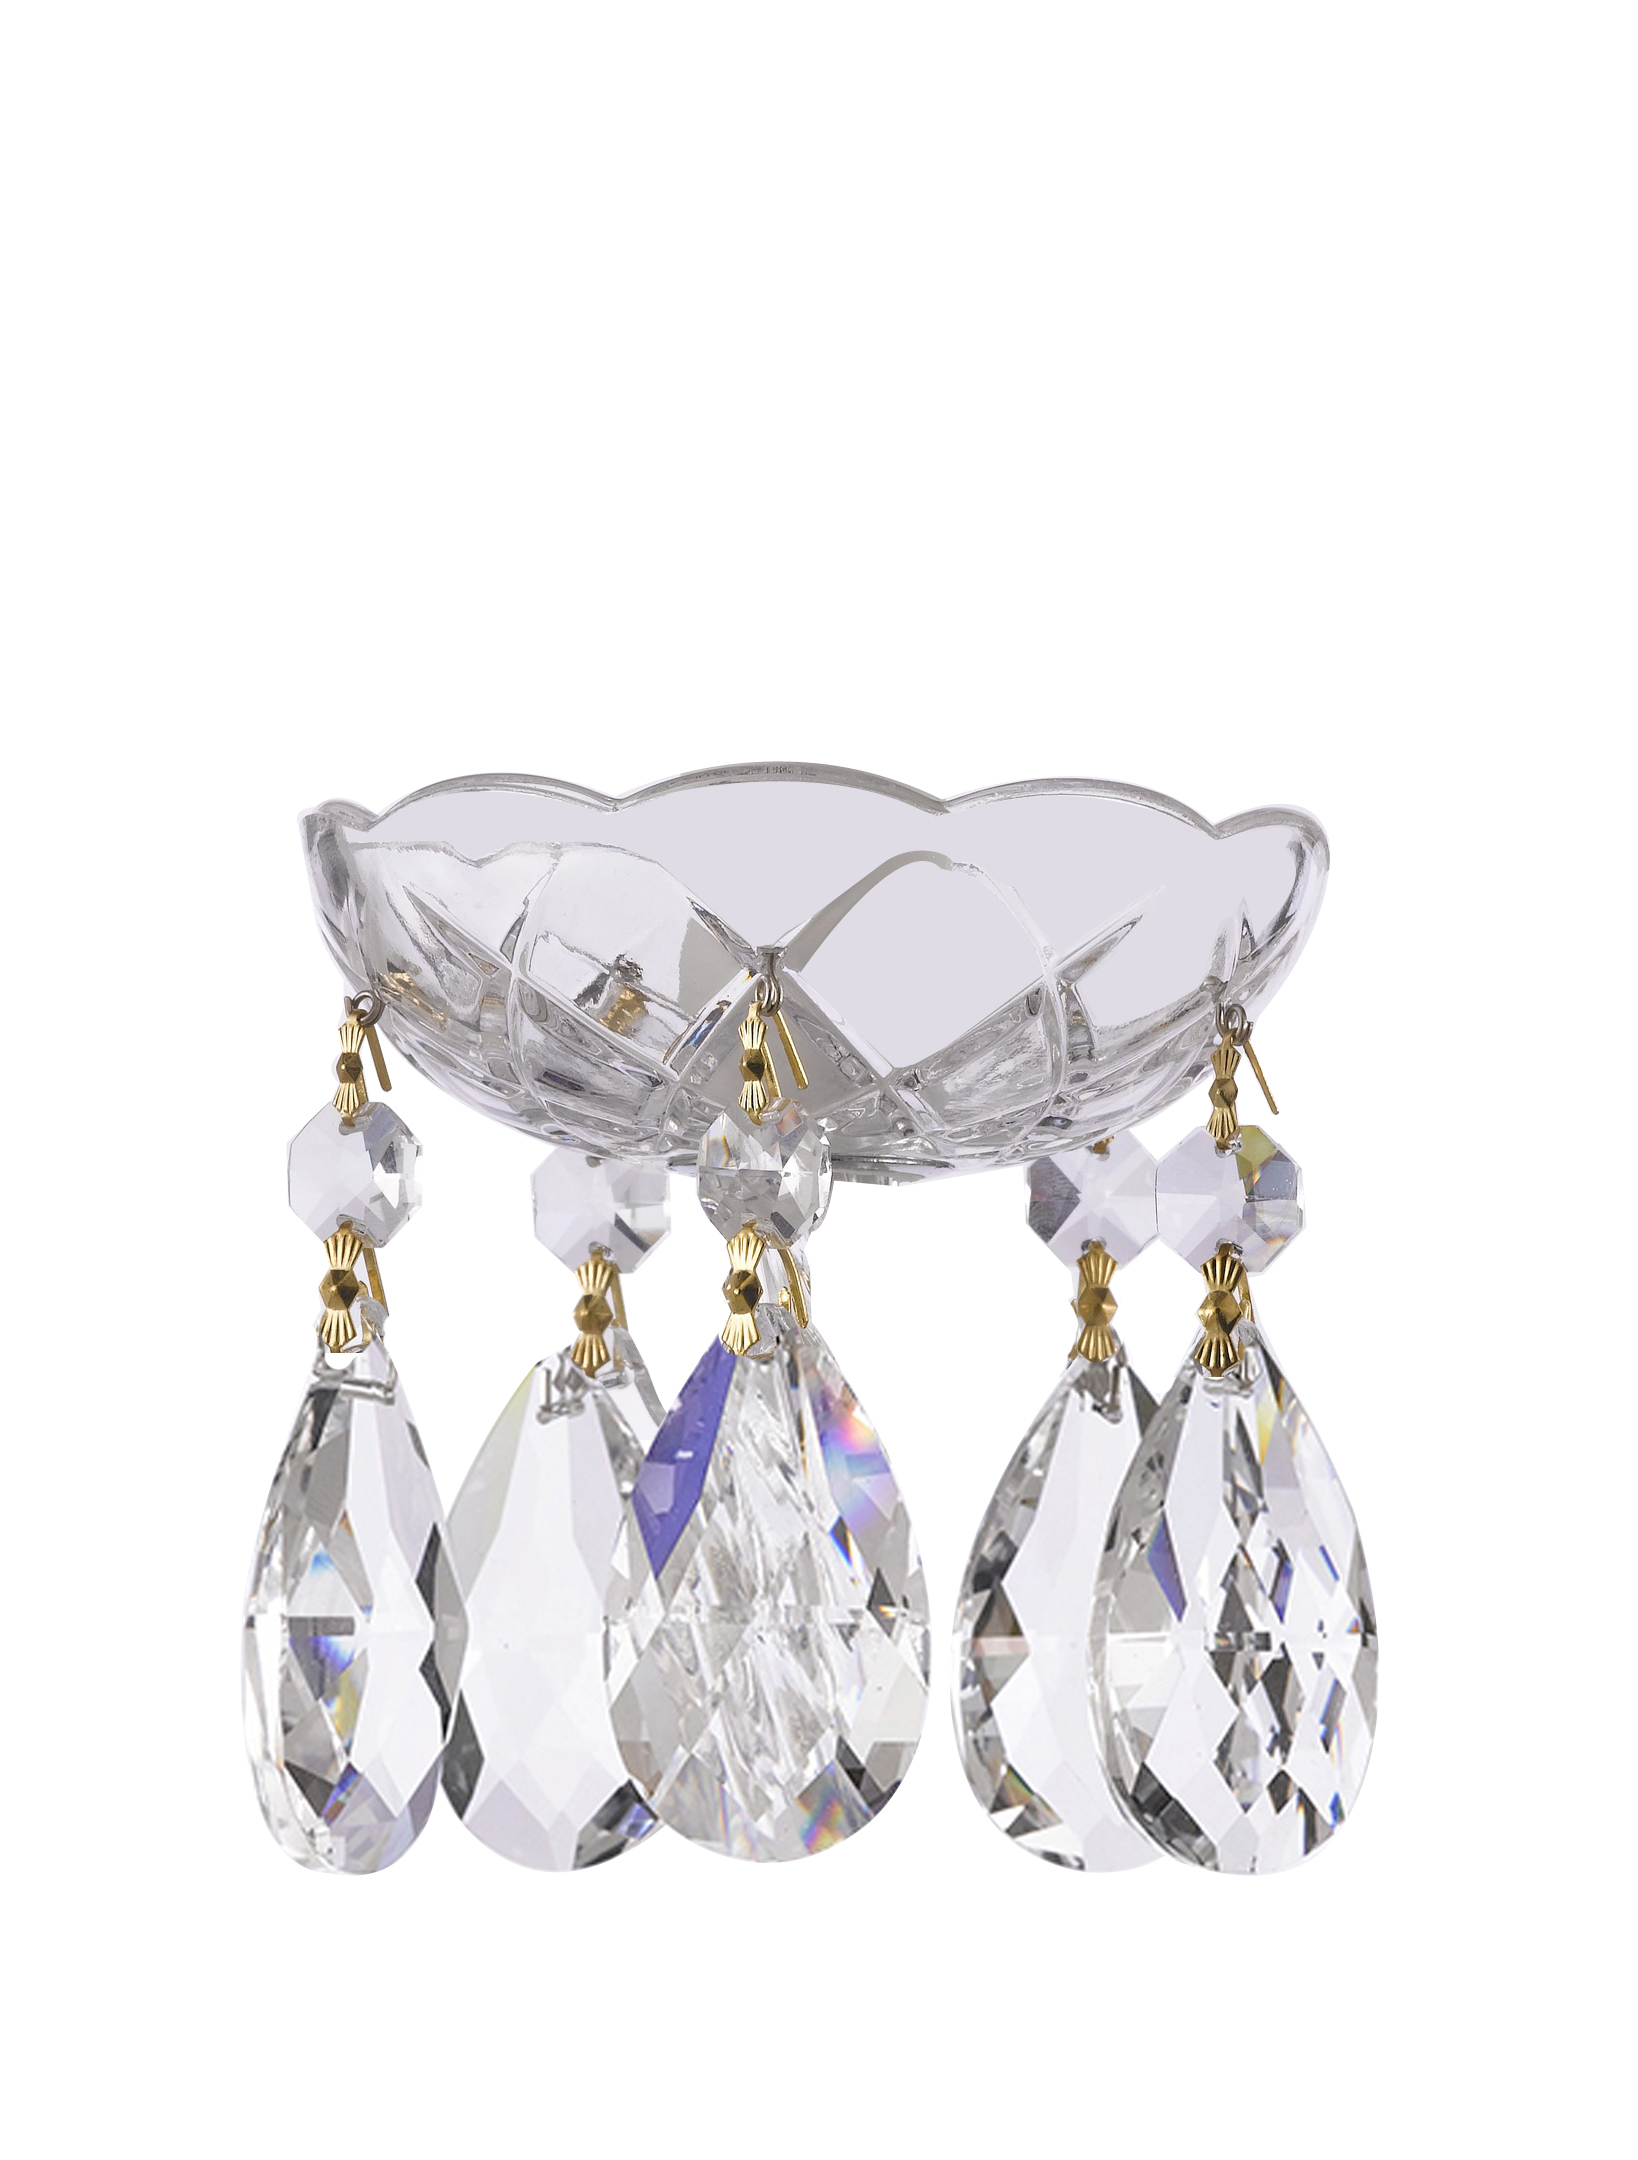 Chandelier Crystals | Chandelier Crystals | Chandelier Prisms